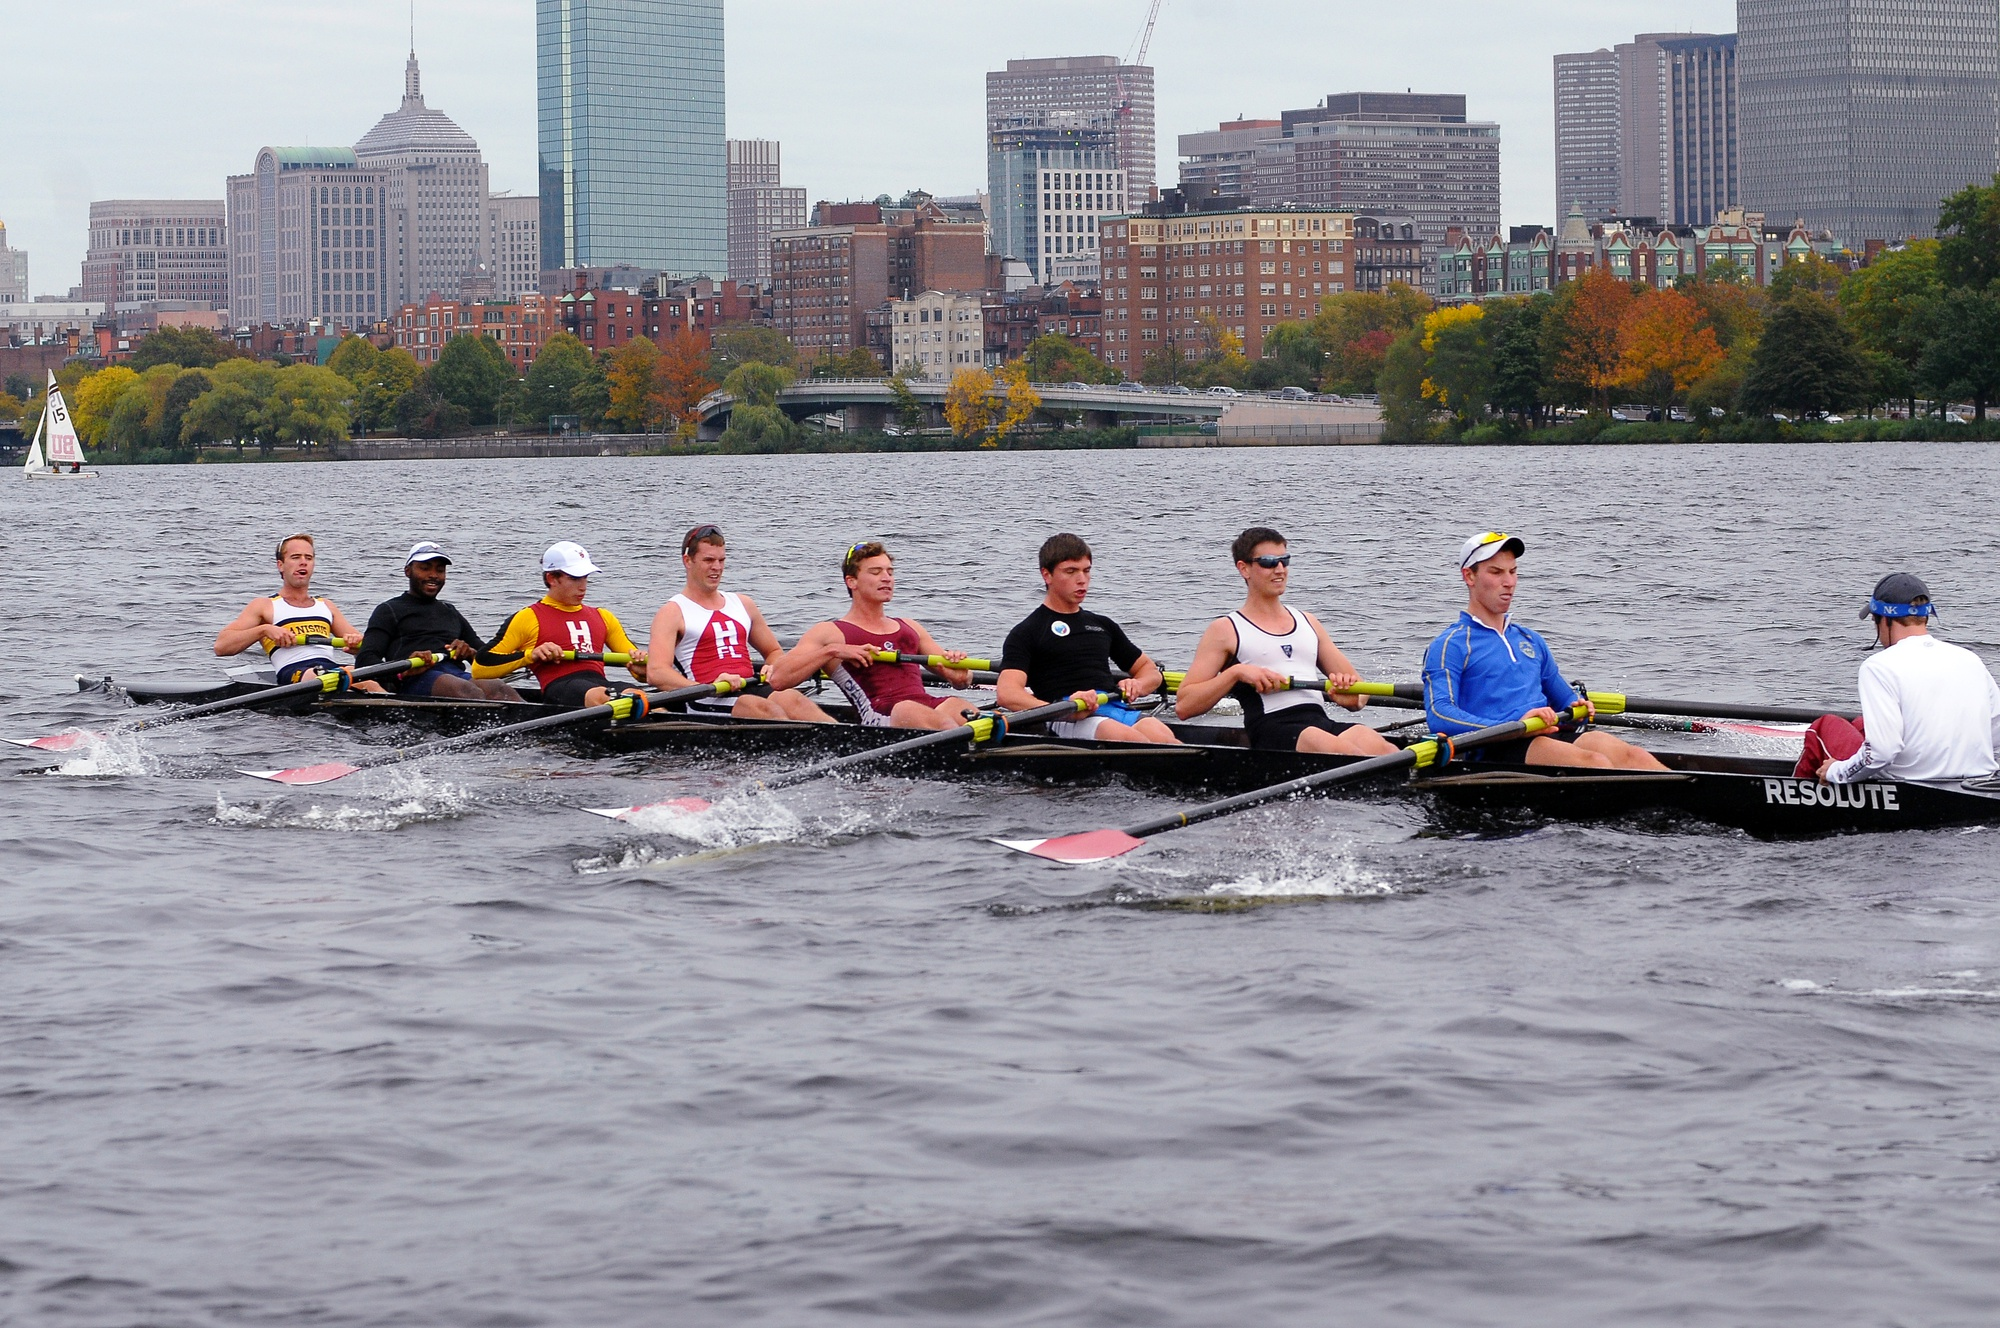 The men's lightweight crew team, showed here in earlier action, took home the Biglin Bowl after downing MIT and Dartmouth in the 1V race.